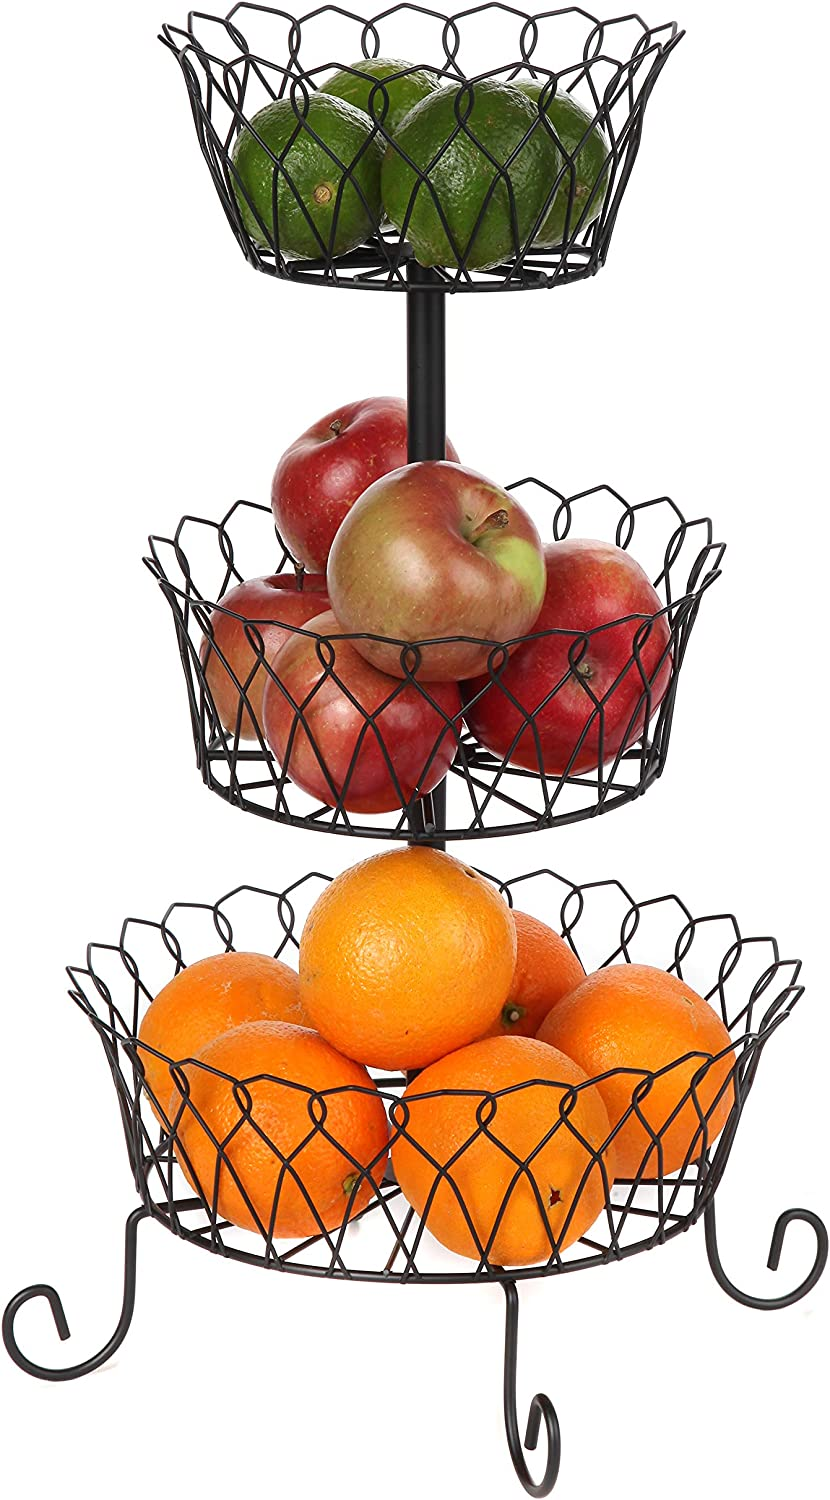 Trenton Gifts Three Tier Wire Basket   Black   Great For Fruits, Vegetable & More